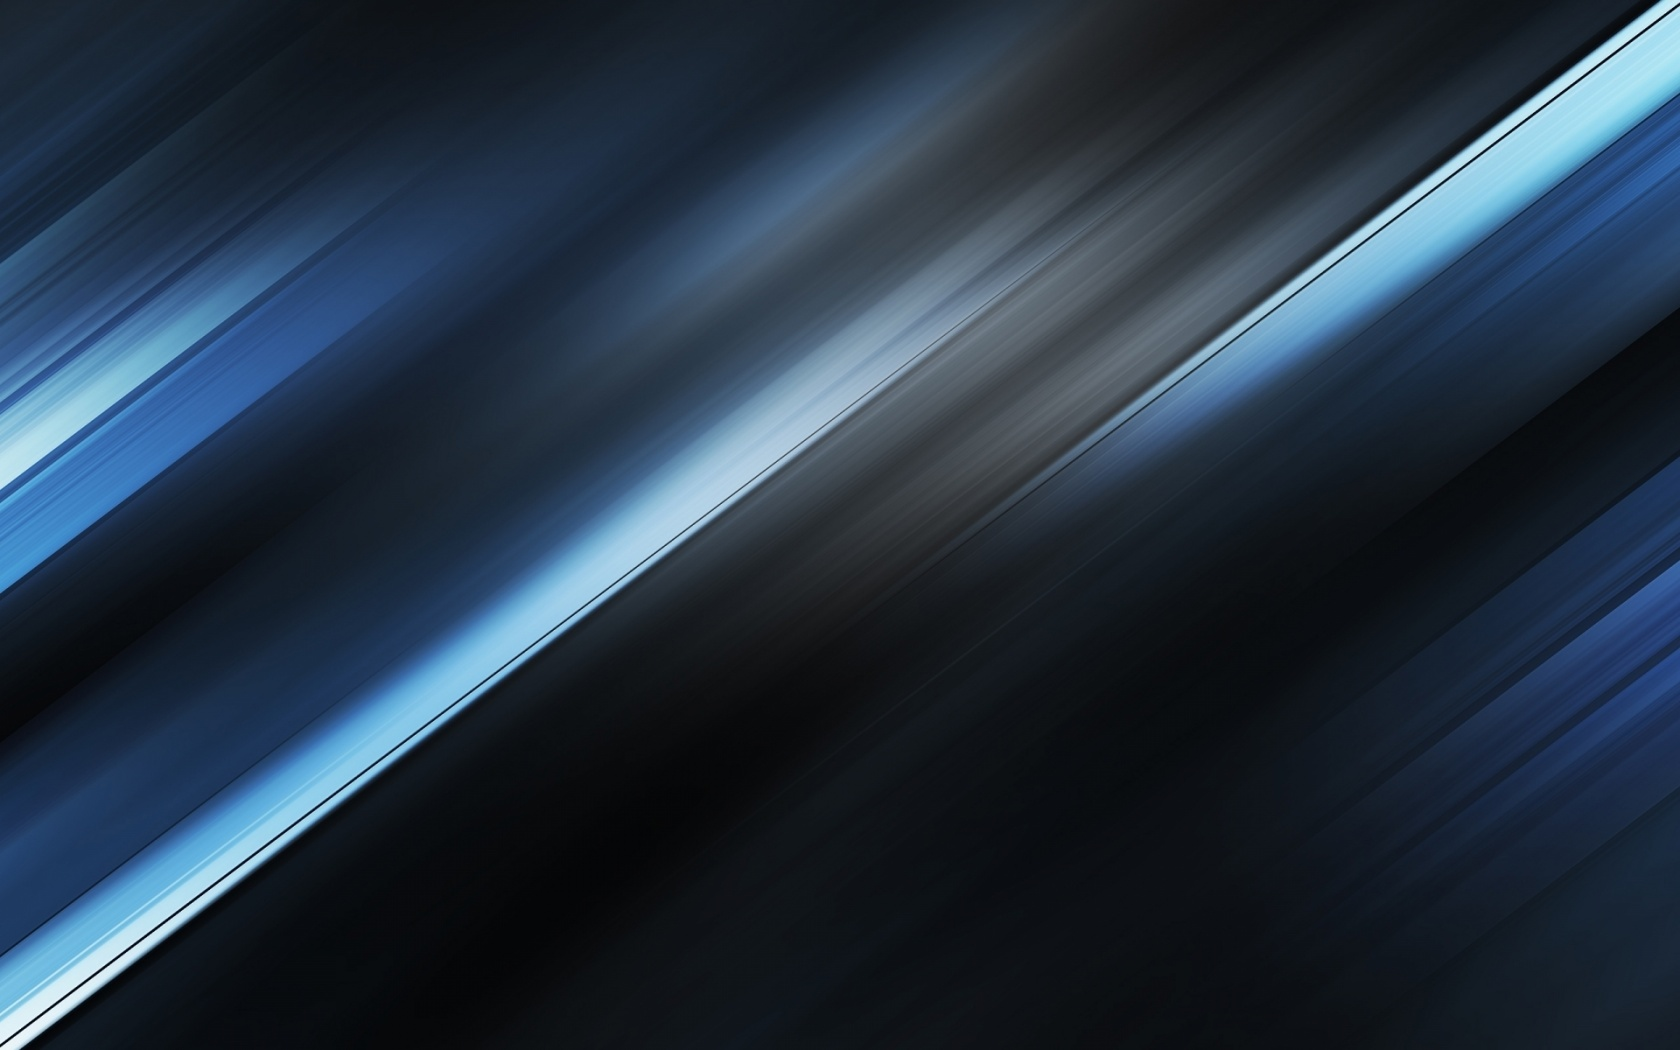 Blue Hd Wallpapers 1080p: 1680x1050px Blue And Black Backgrounds